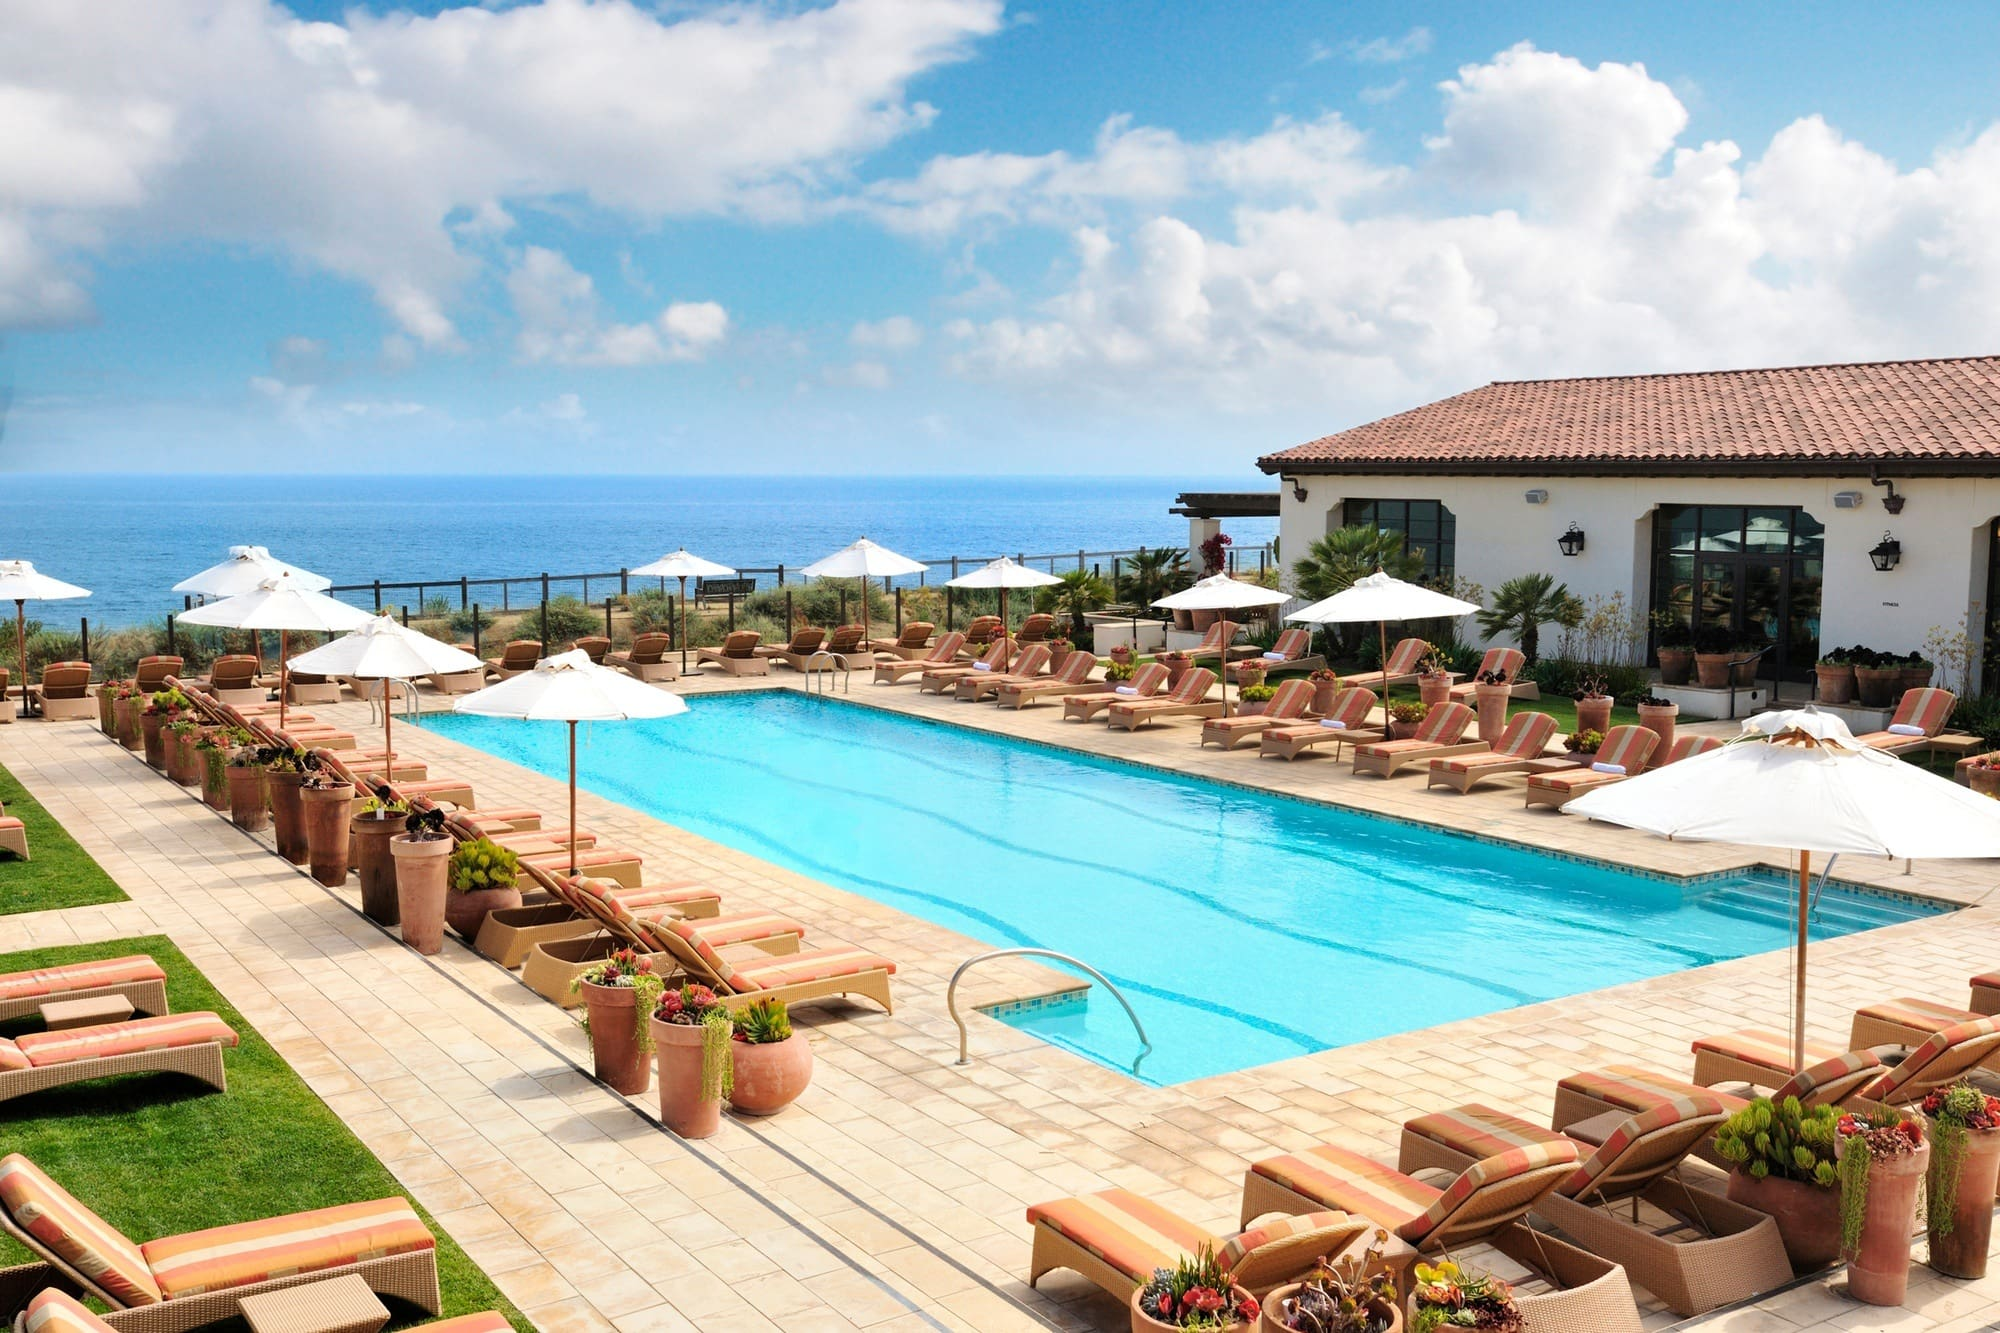 Best hotel spa pools